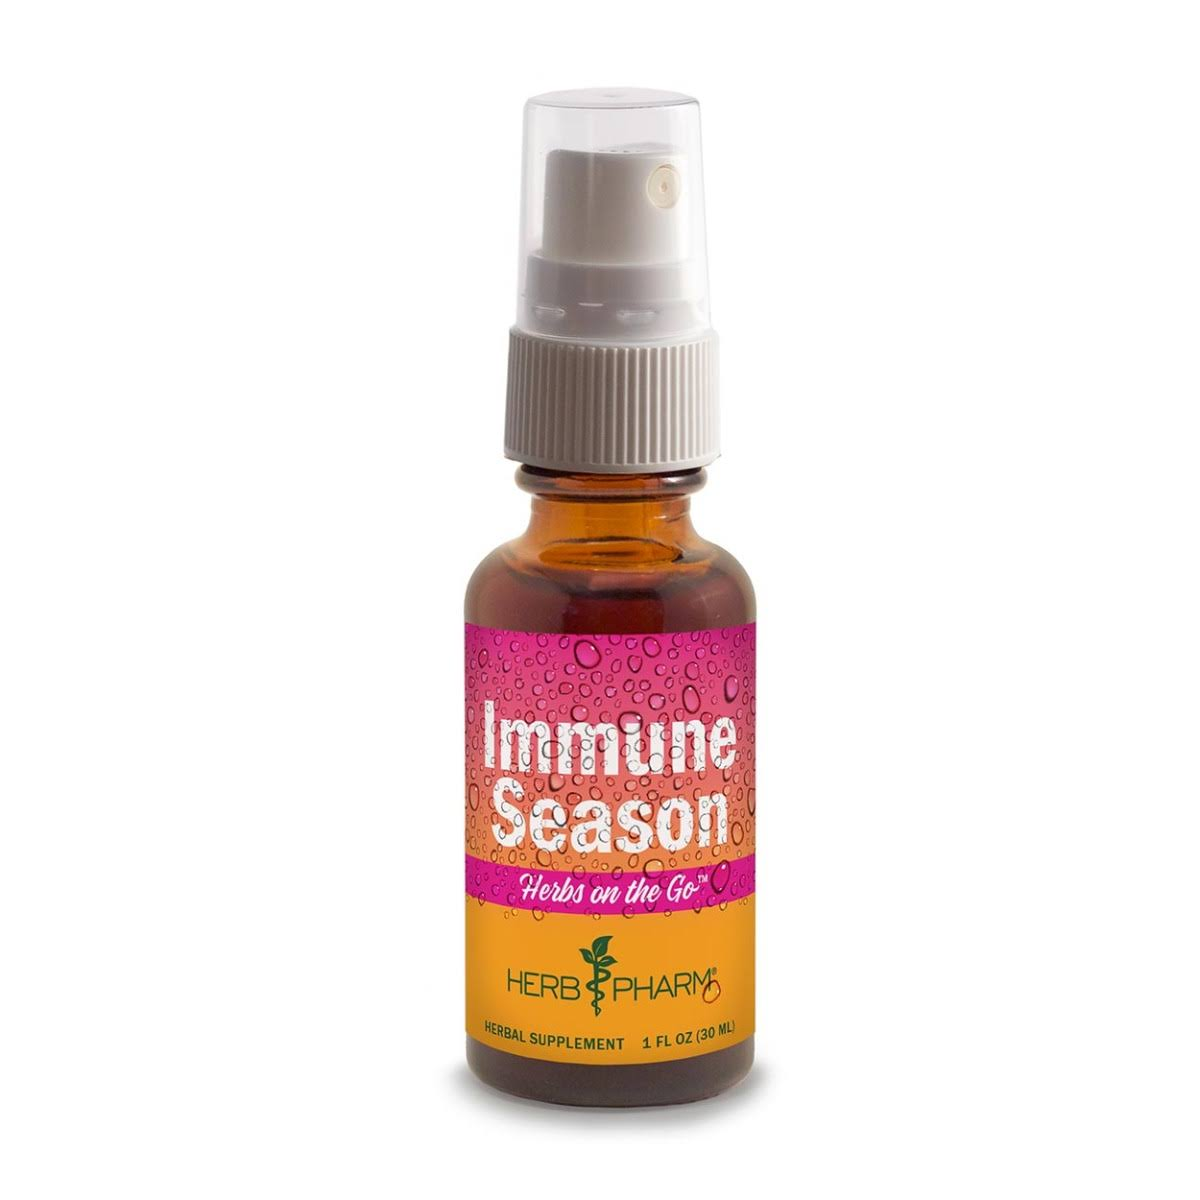 Herb Pharm Immune Season, Herbs on the Go - 1 fl oz